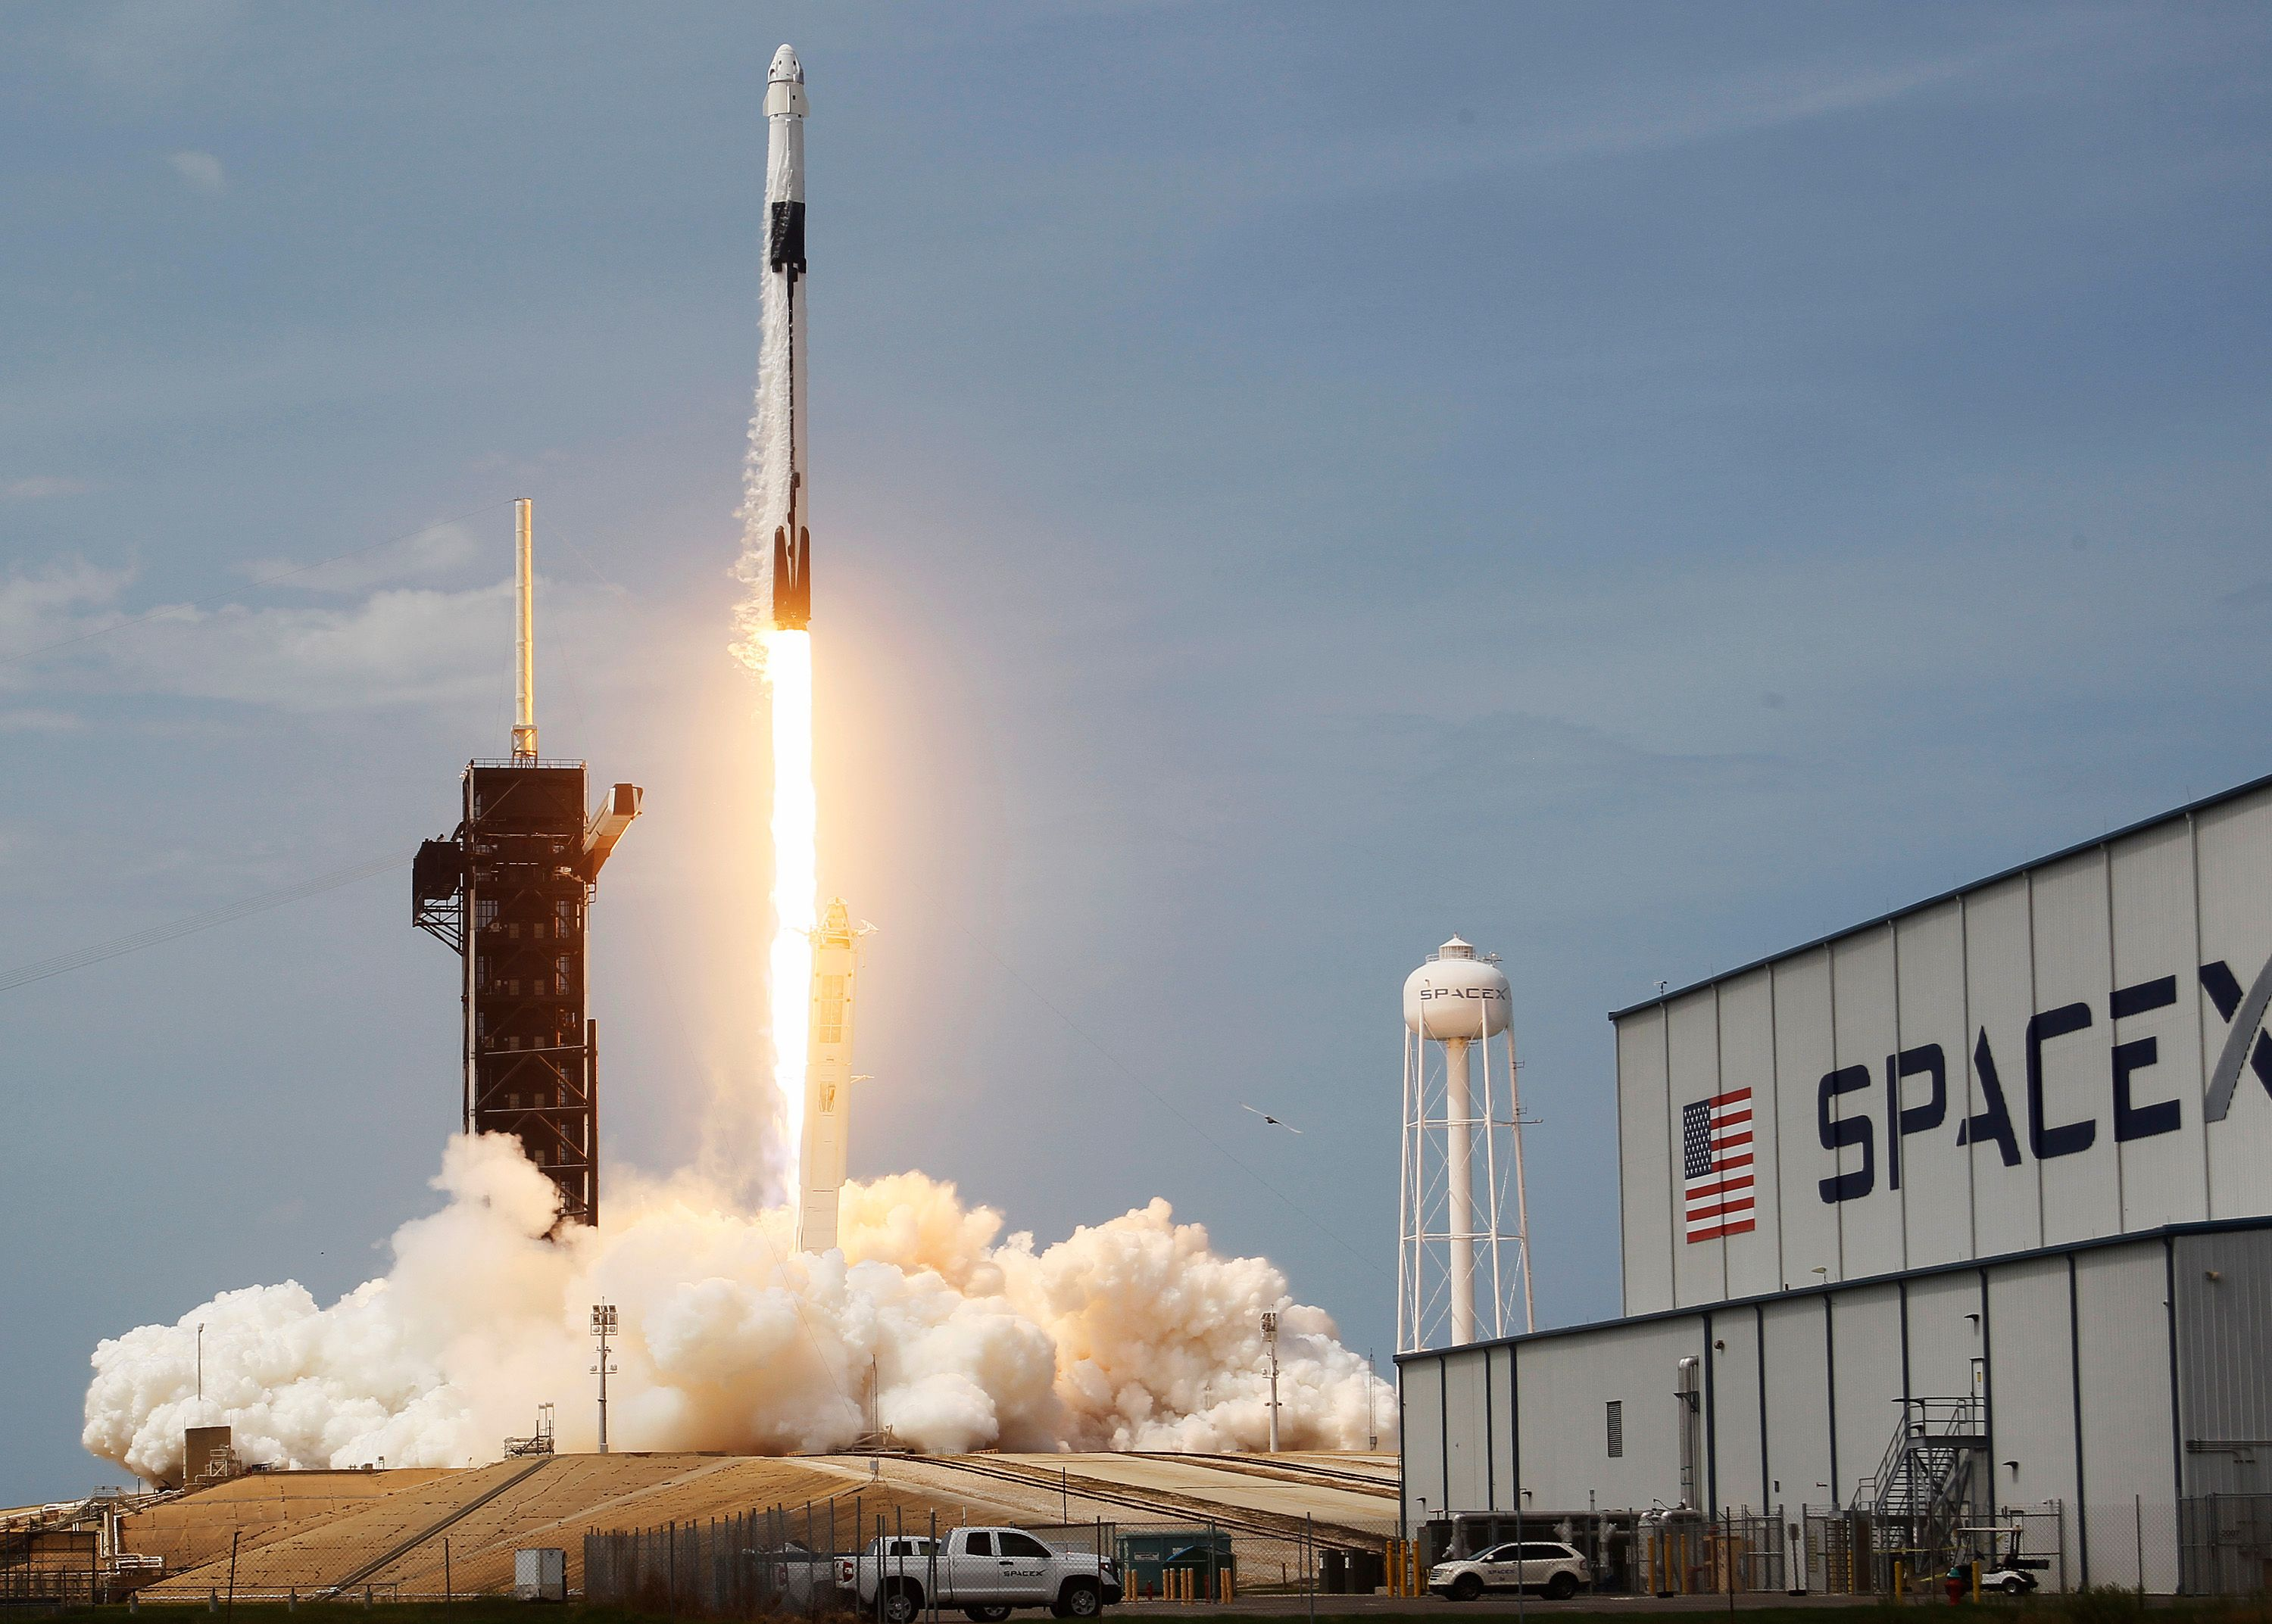 A SpaceX rocket launches upwards against a pale blue sky.